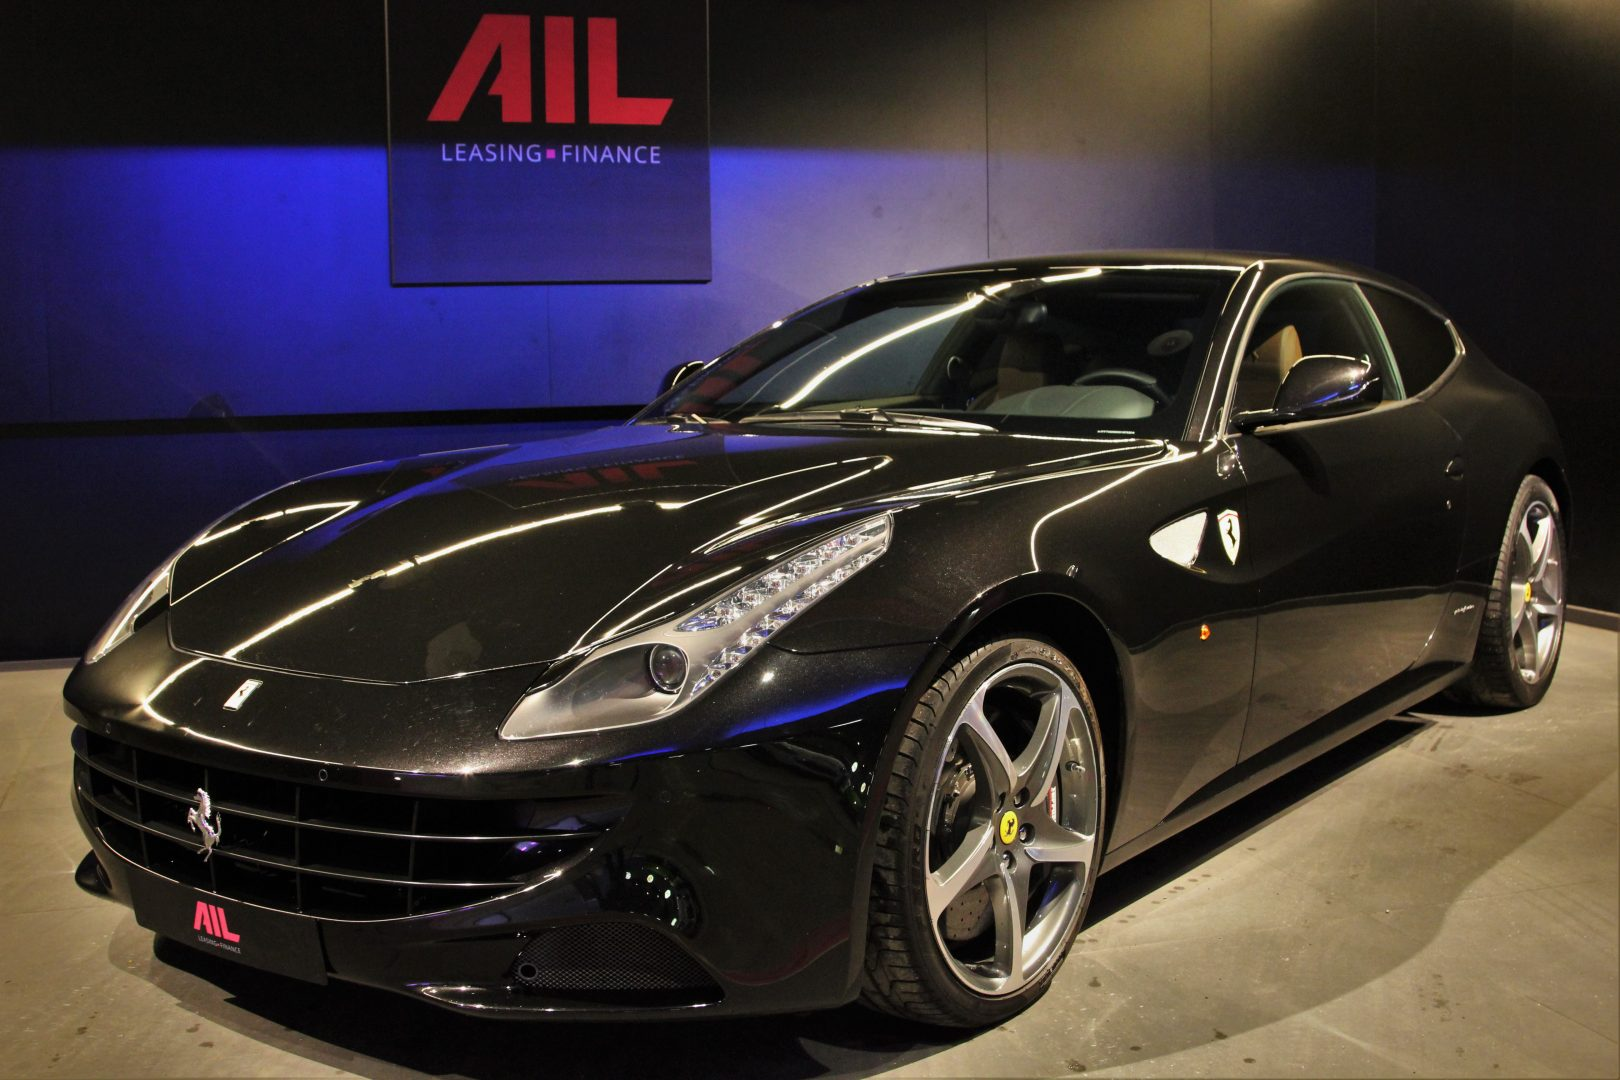 AIL Ferrari FF V12 Carbon Ceramic Brake 8